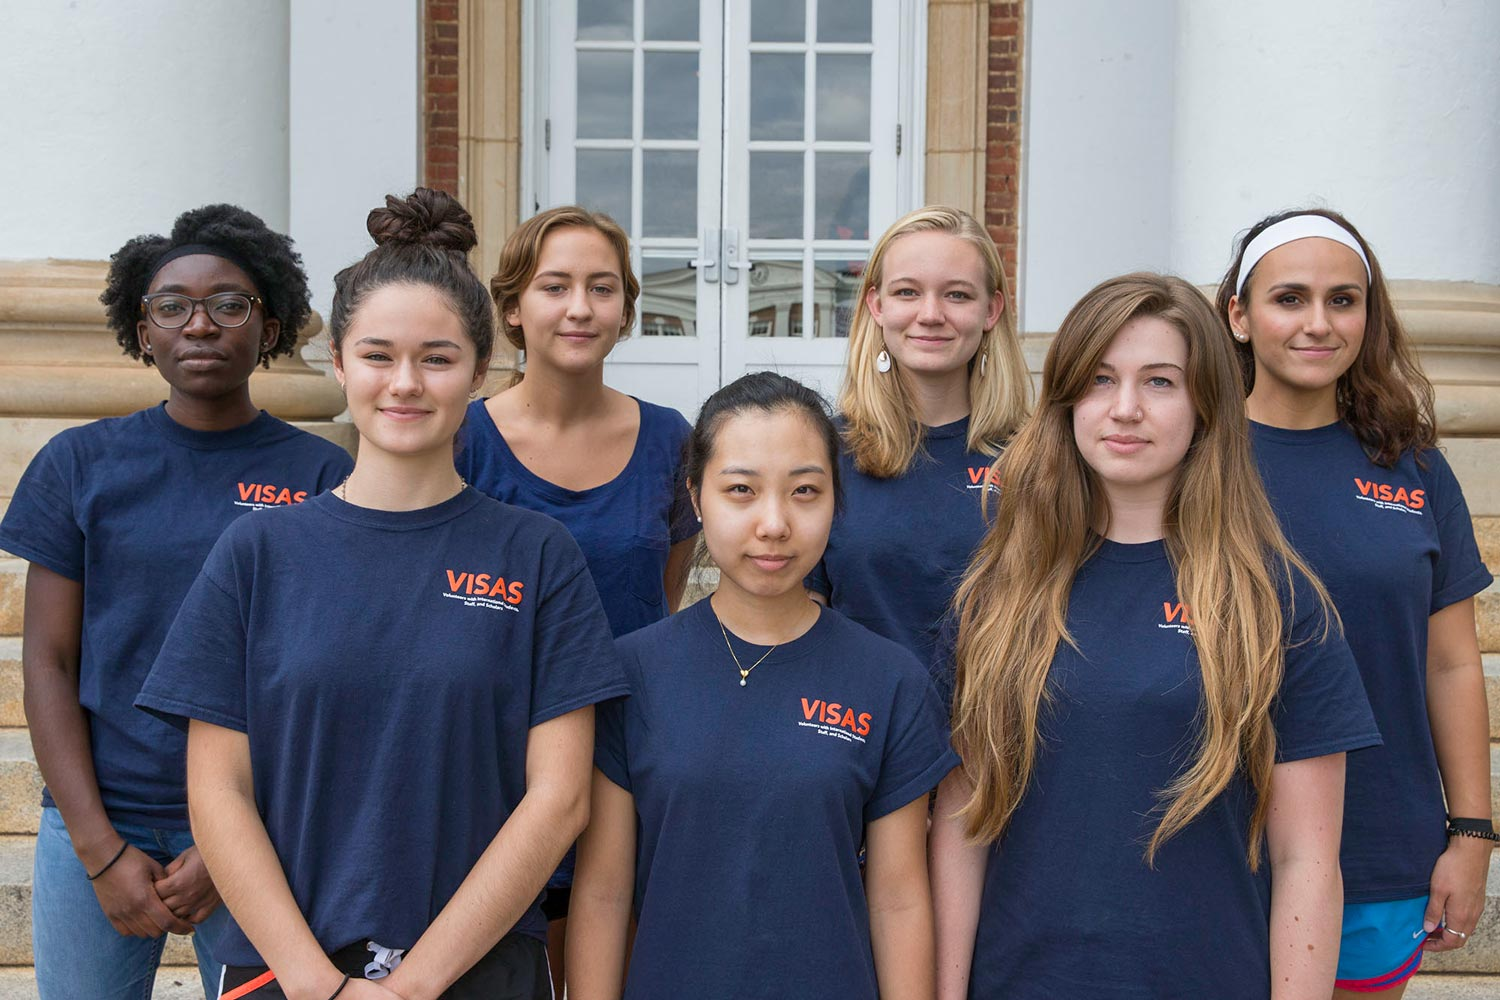 VISAS student volunteers back row from left to right: Elma Adusei, Elise McMath, Carolyn Ours, Gabriela Mendoza. Front row from left to right: Isabelle Burke, Jessie Jung, and Emily Hayes. (Photo by Dan Addison, University Communications)